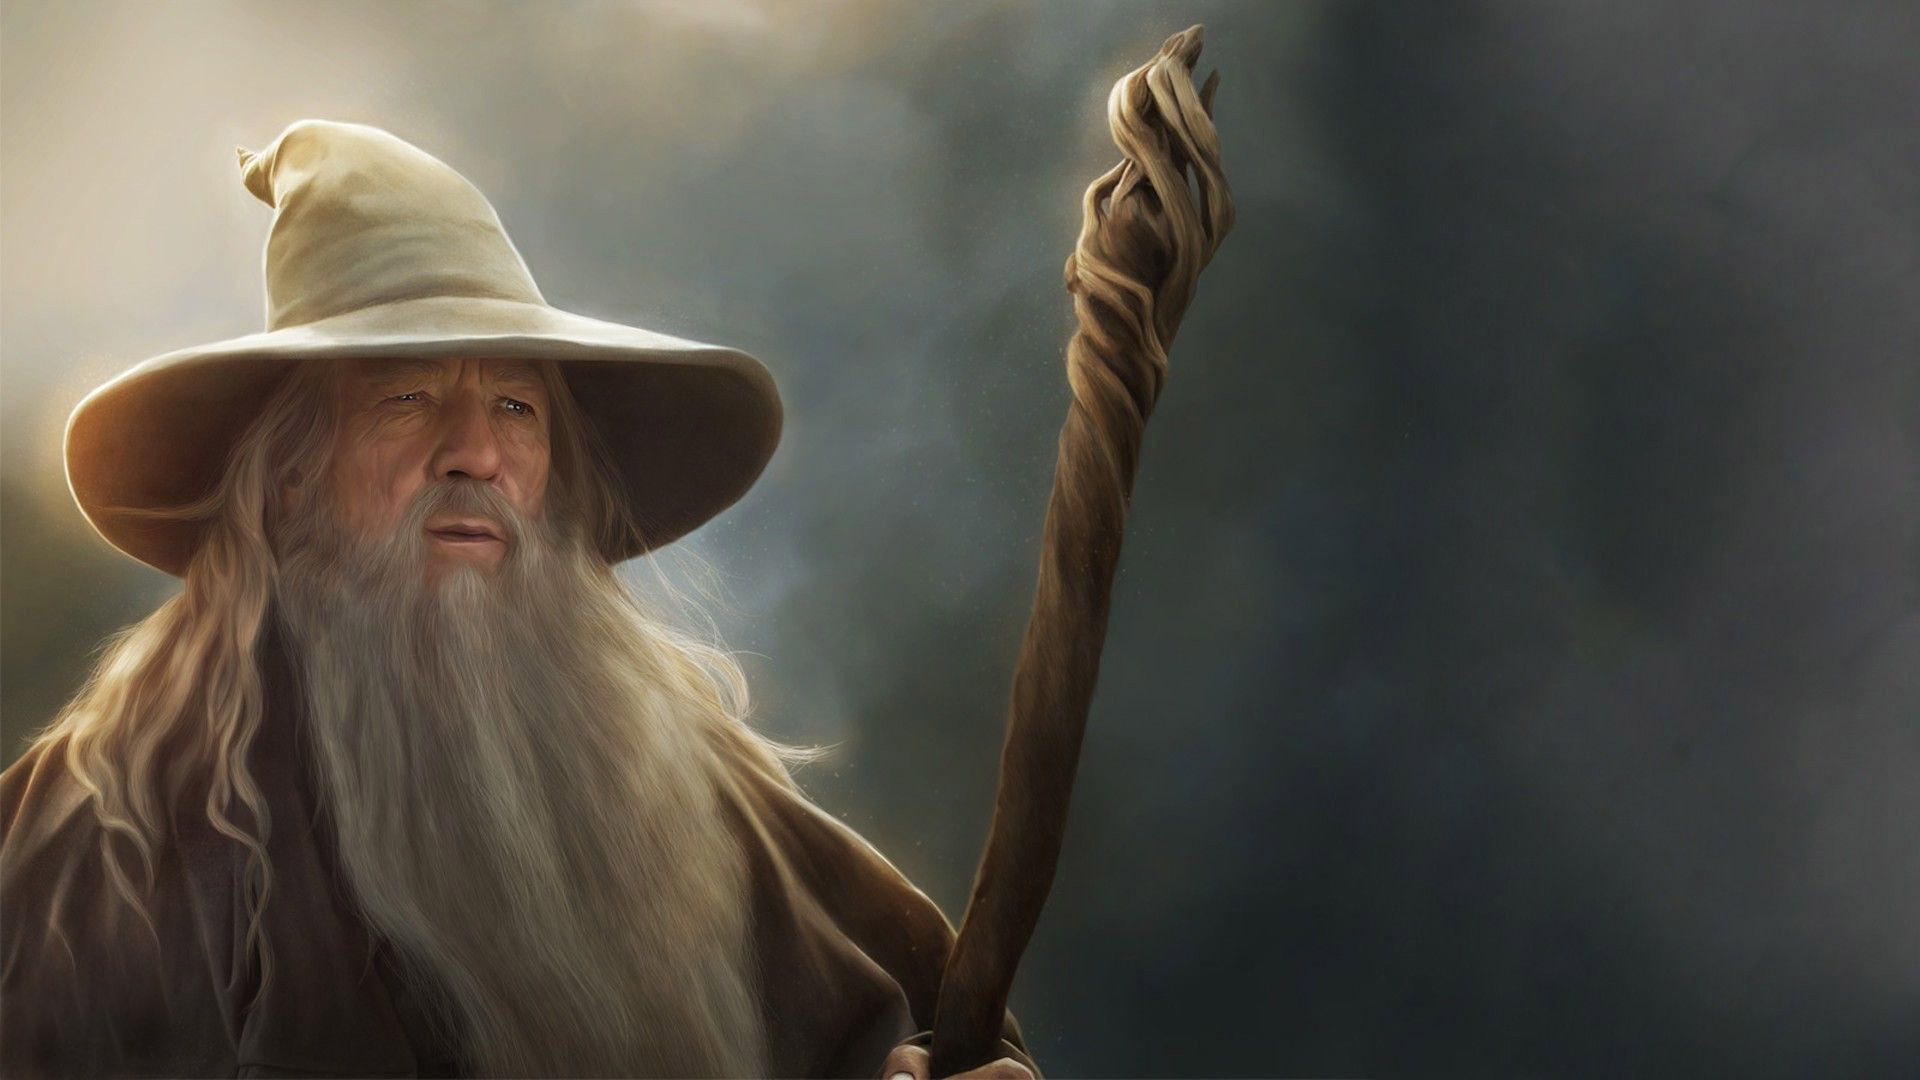 Gandalf   The Lord of the Rings wallpaper   1205998 1920x1080